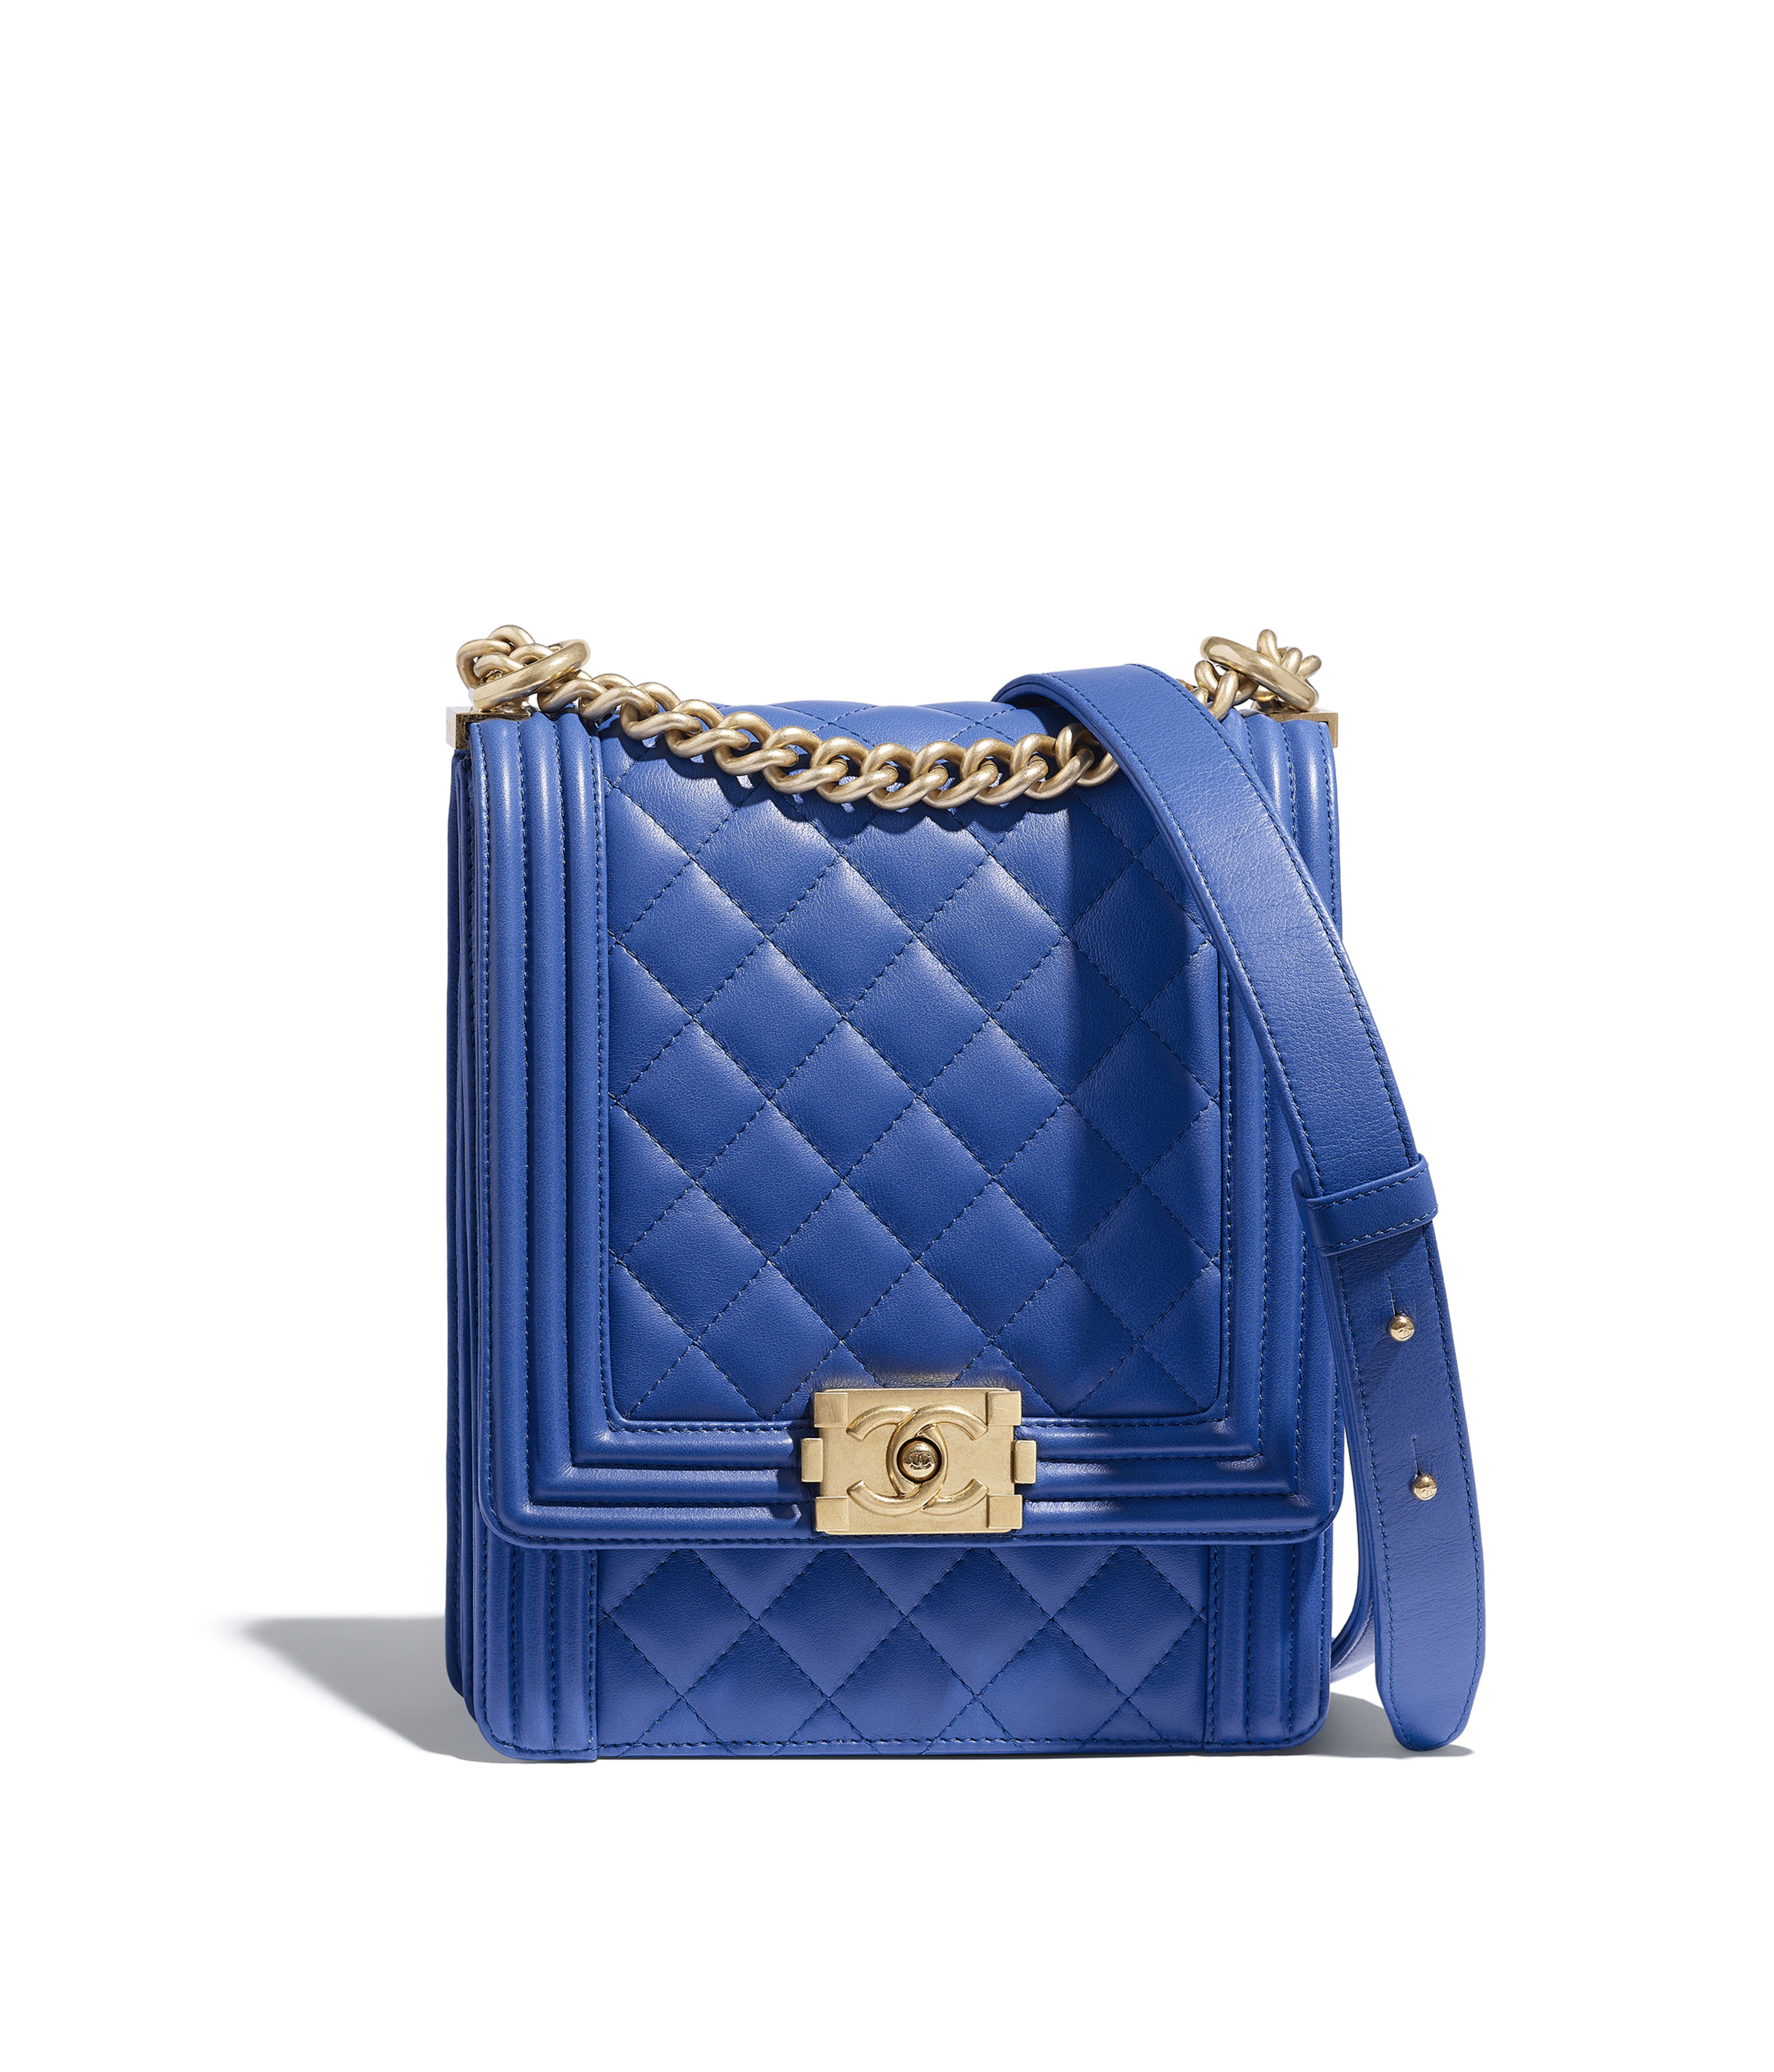 BOY CHANEL Handbag Calfskin   Gold-Tone Metal, Blue Ref. AS0130Y099395B646 69c7462ccd2